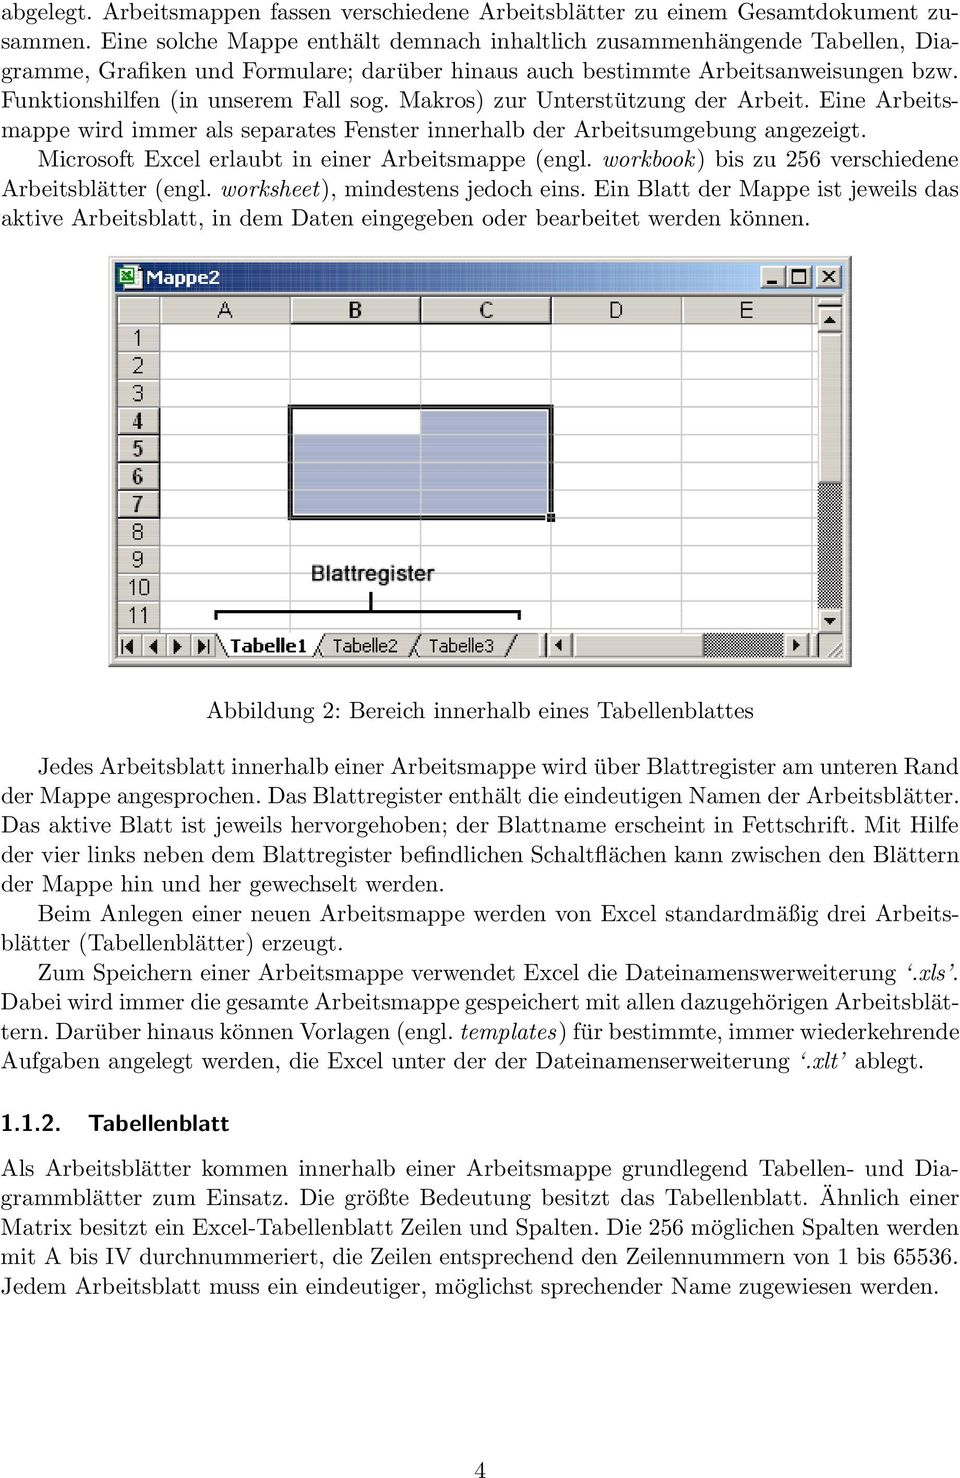 Einführung in Visual Basic for Applications - PDF